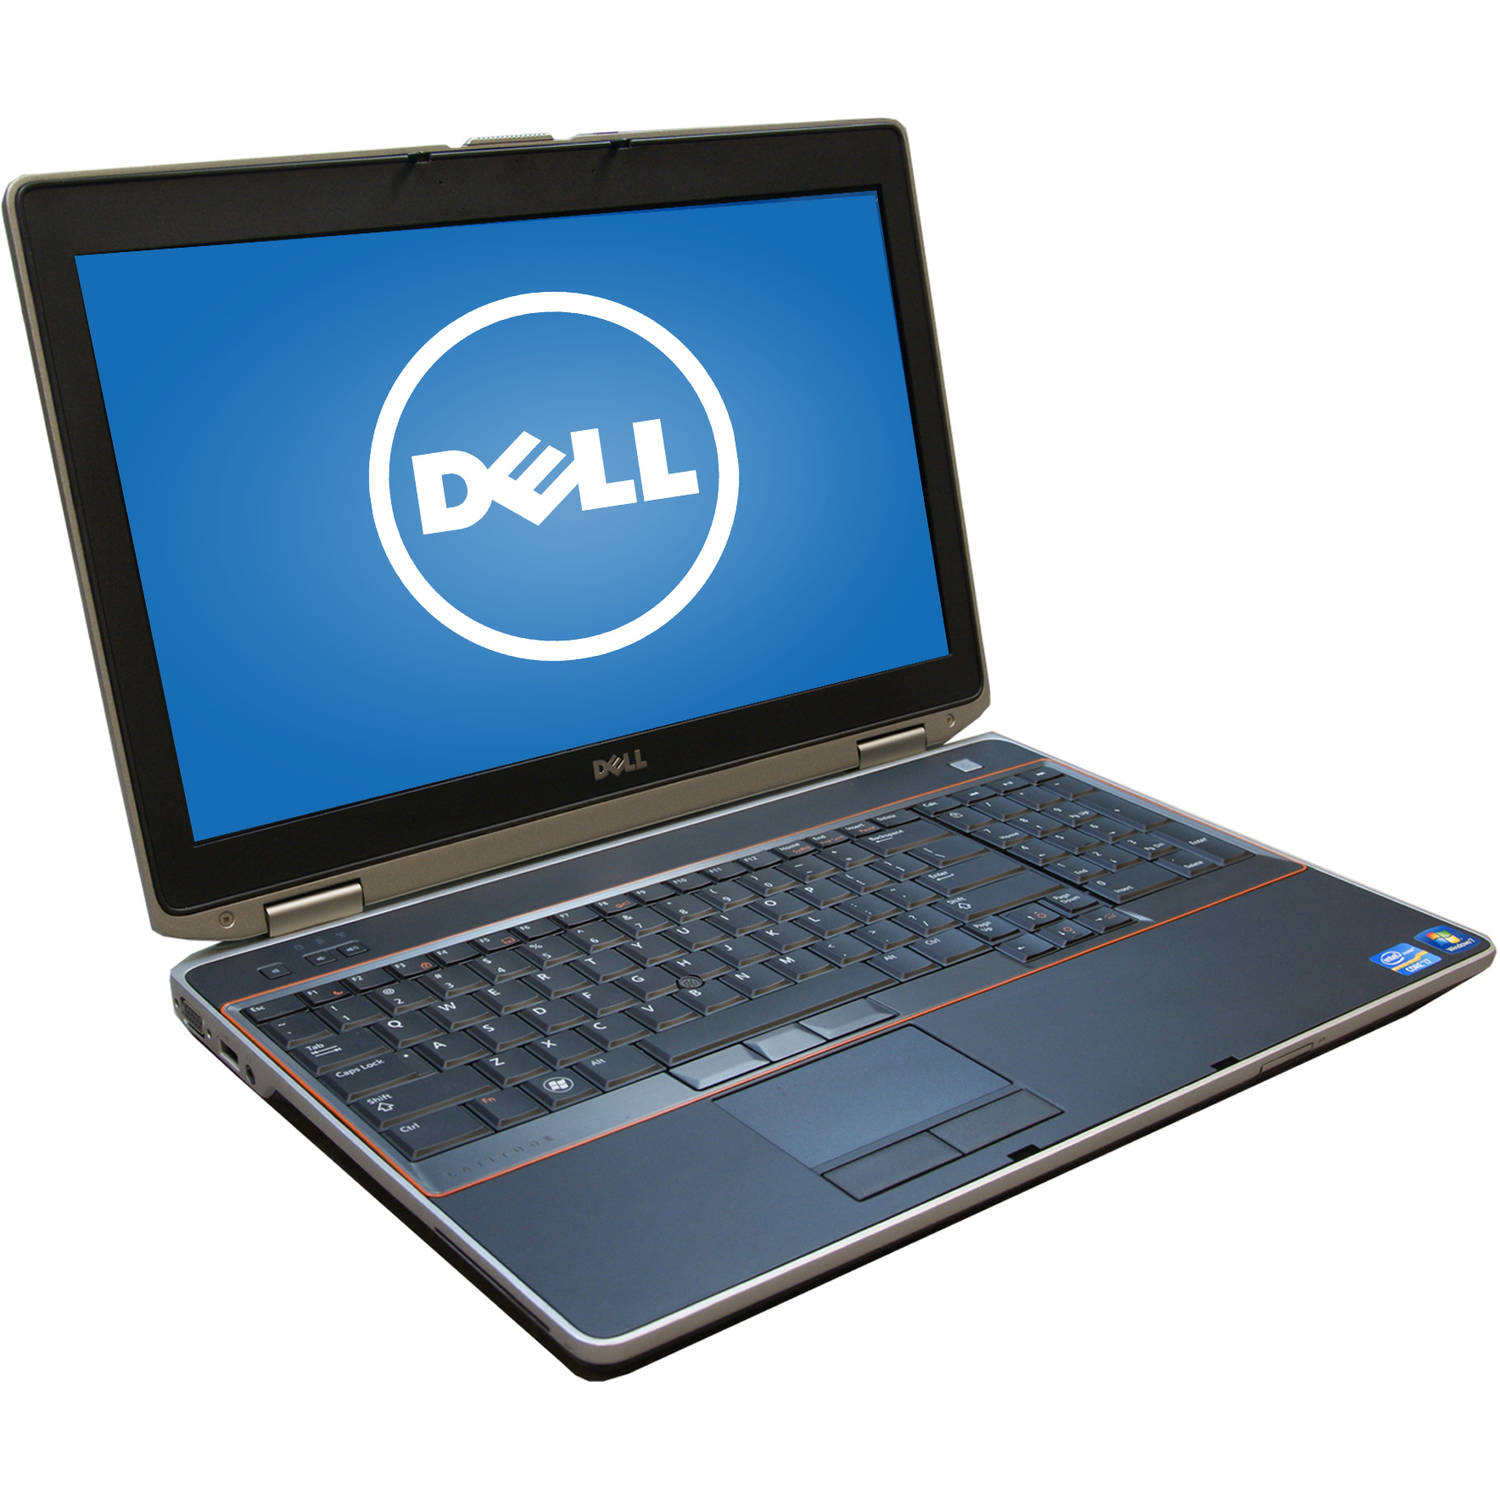 "Refurbished Dell 15.6"" Latitude E6520 Laptop PC with Intel Core i5-2520M Processor, 8GB Memory, 128GB Solid State Drive and Windows 10 Pro"